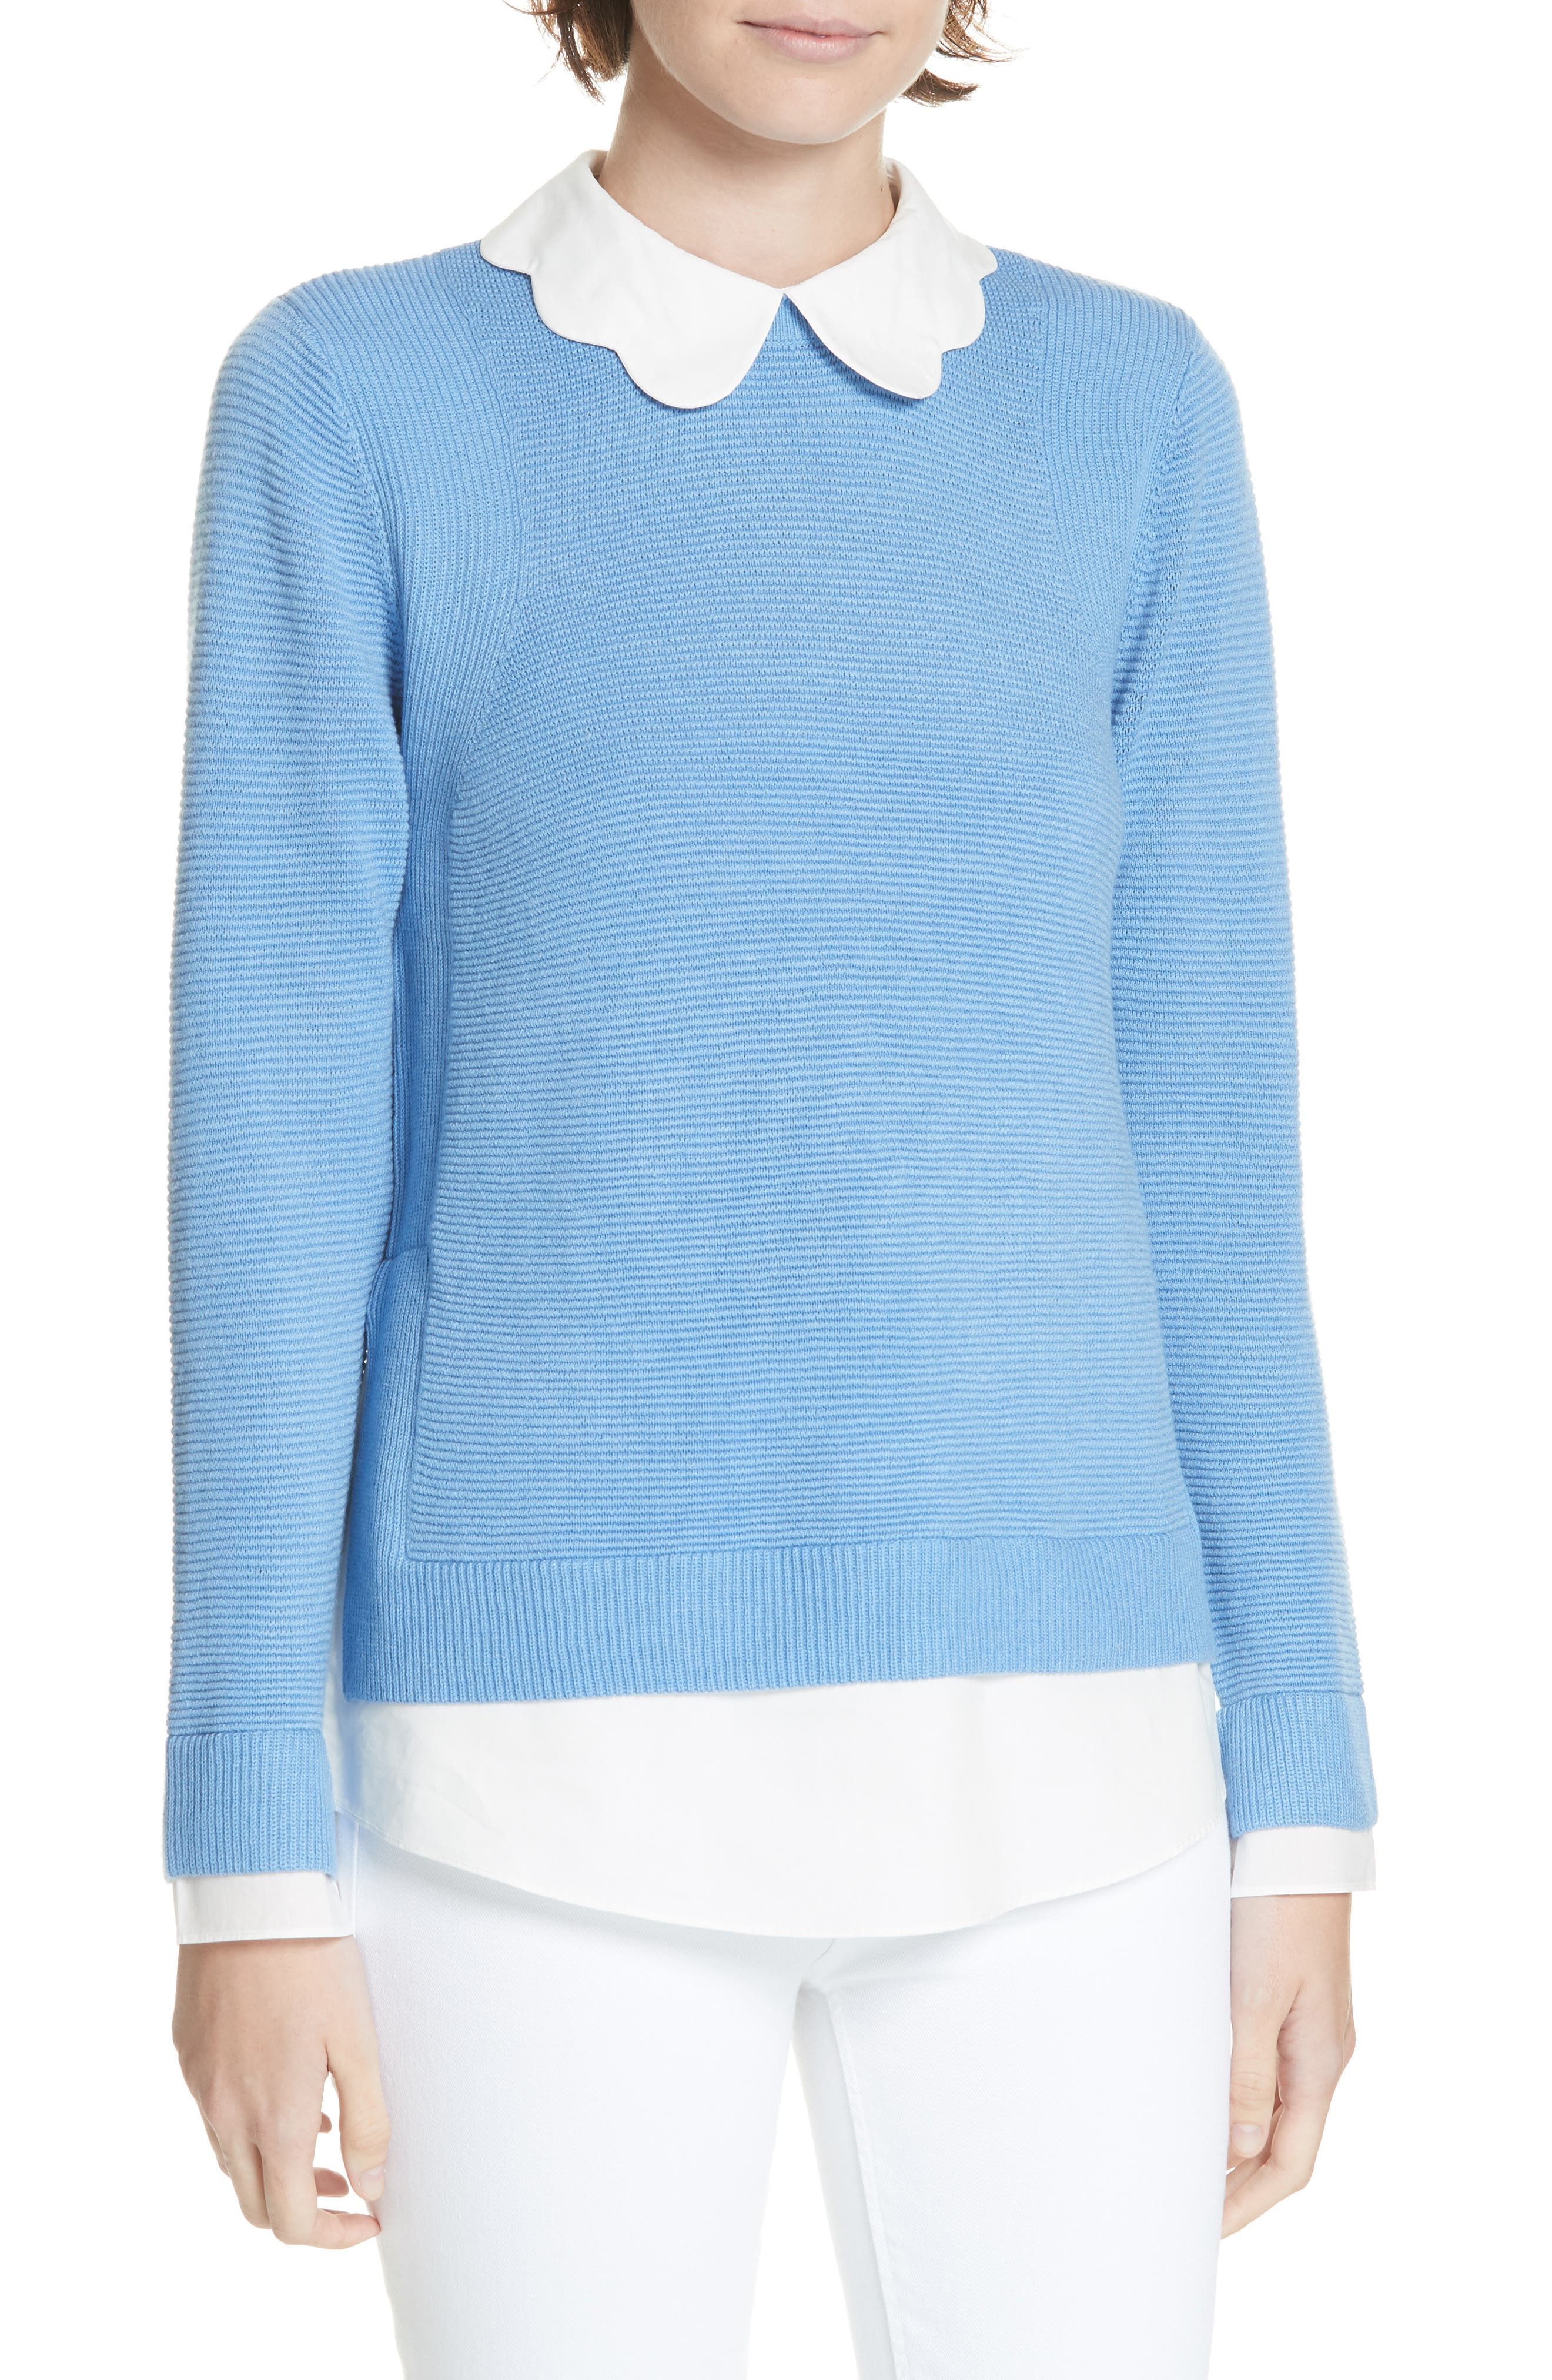 Bronwen Scalloped Collar Sweater,                             Main thumbnail 1, color,                             424